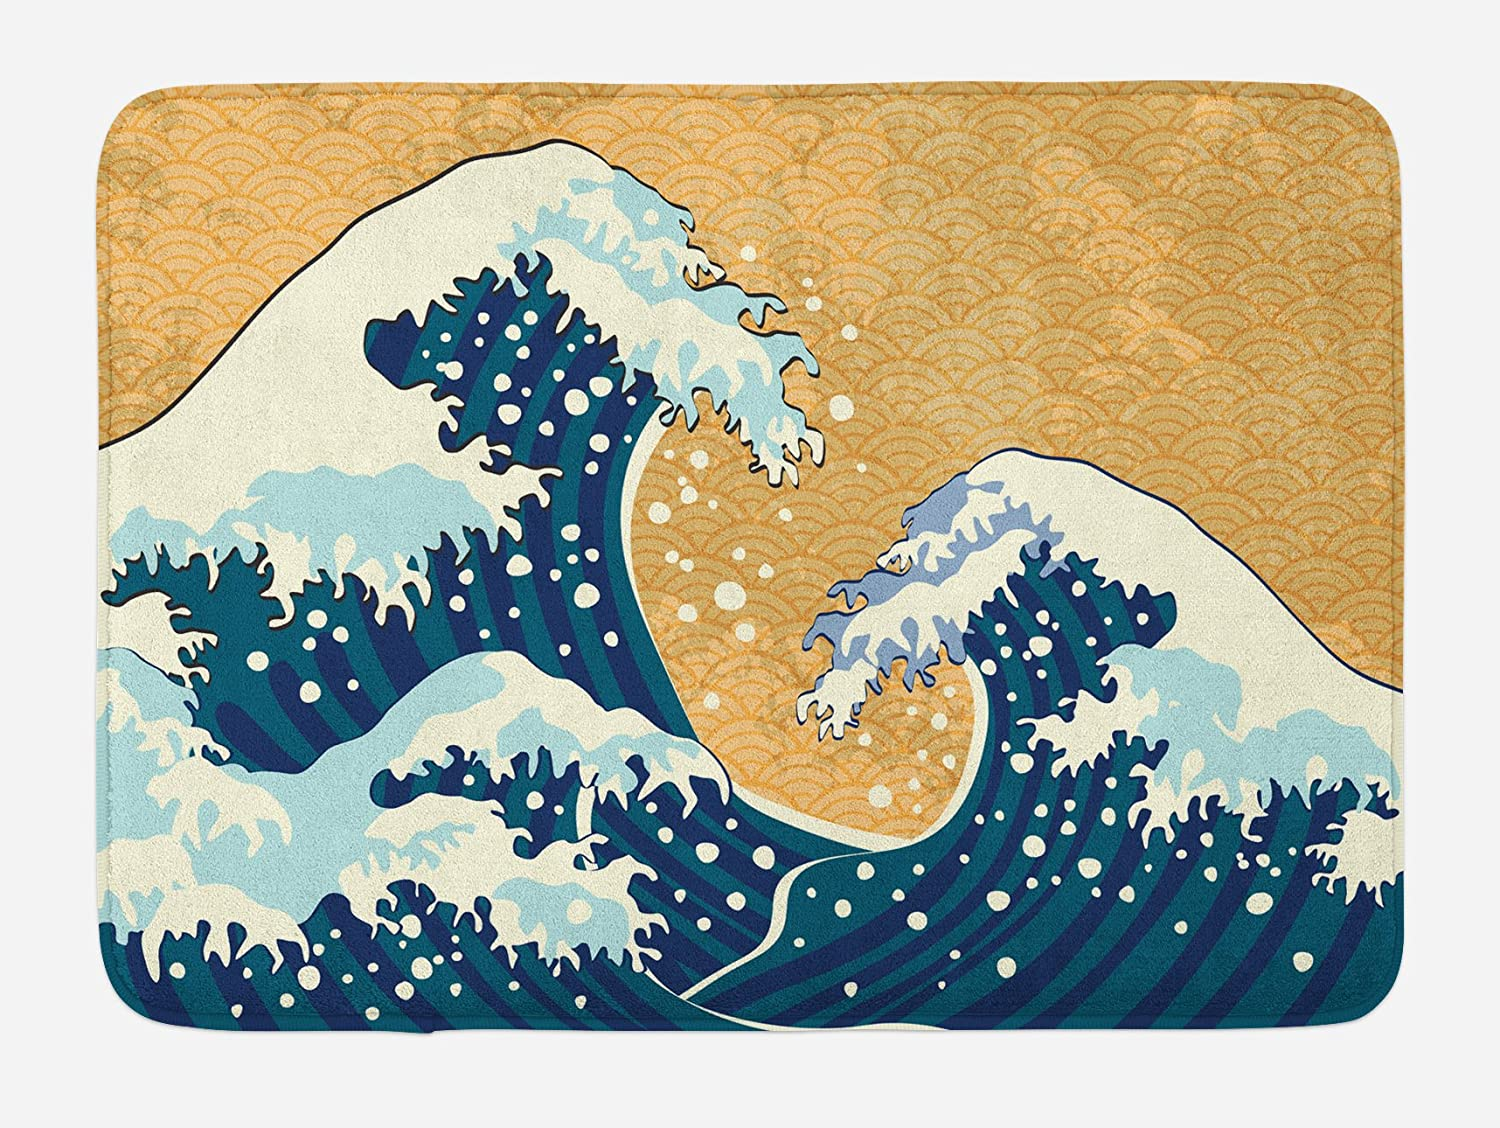 Ambesonne Japanese Wave Bath Mat, Sea Storm in Japan Traditional Drawing Foamy Waves, Plush Bathroom Decor Mat with Non Slip Backing, 29.5 X 17.5, Yellow Blue